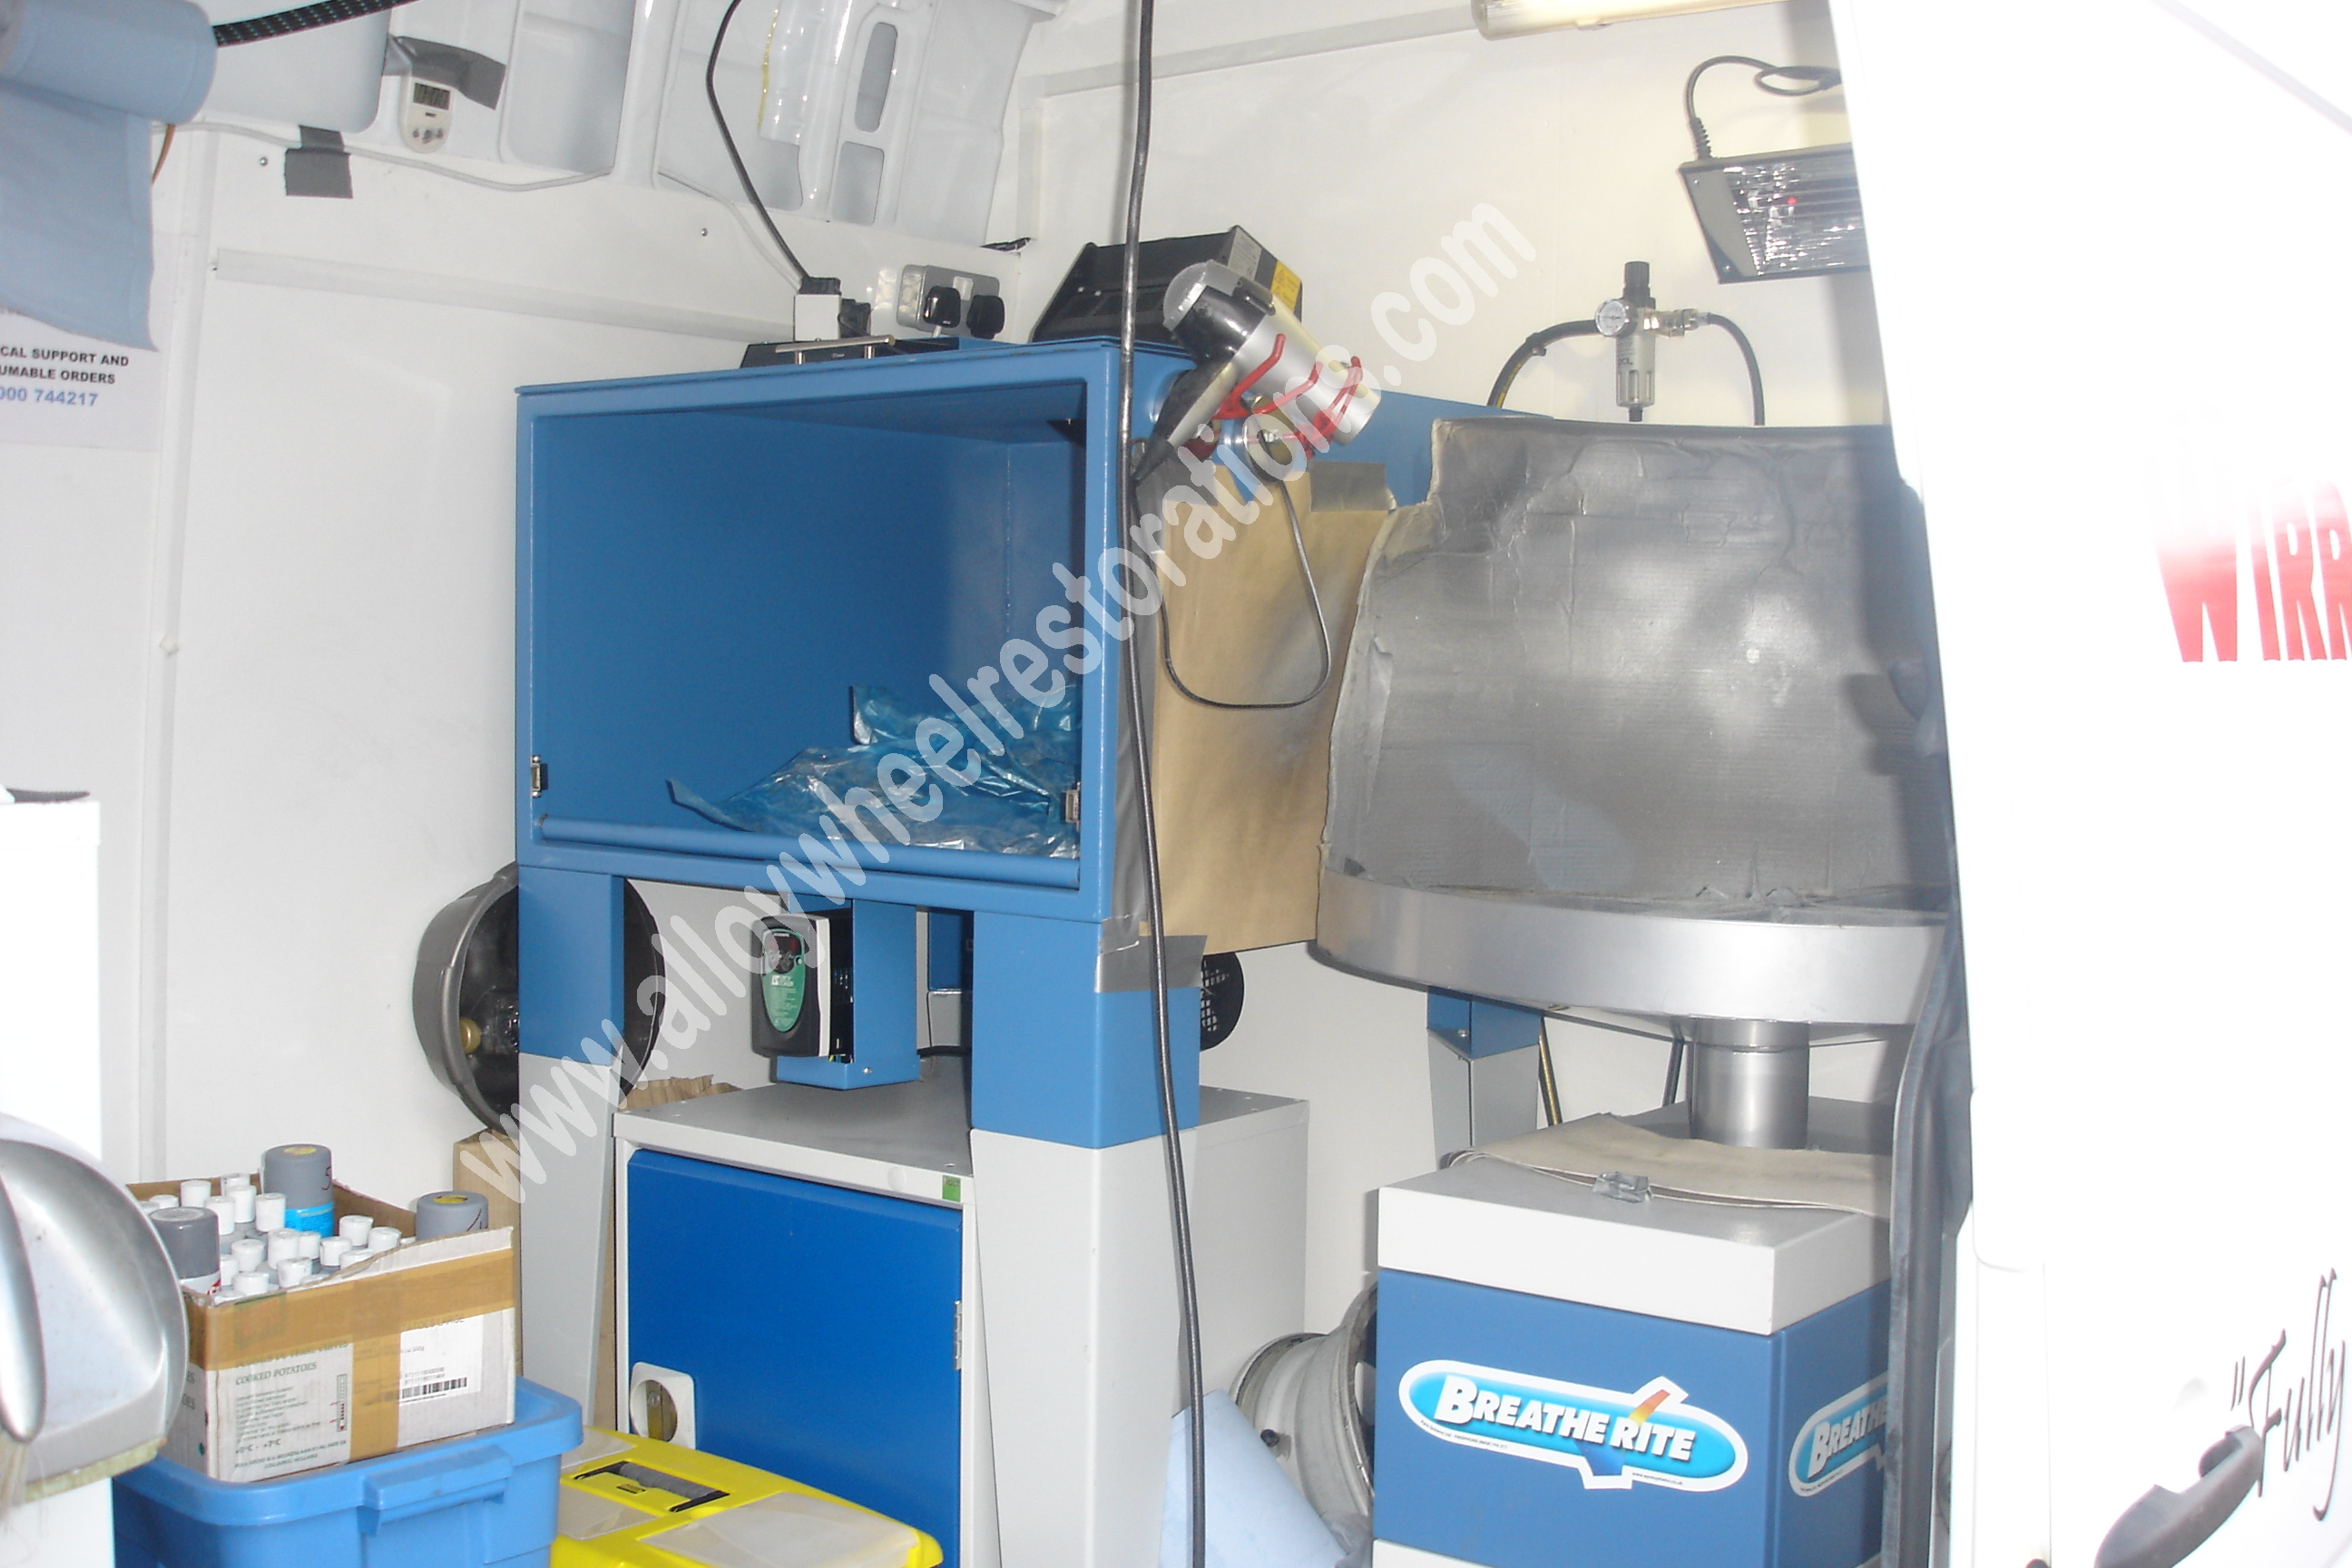 wheel-finnishing-area-uv-oven-spray-booth-area